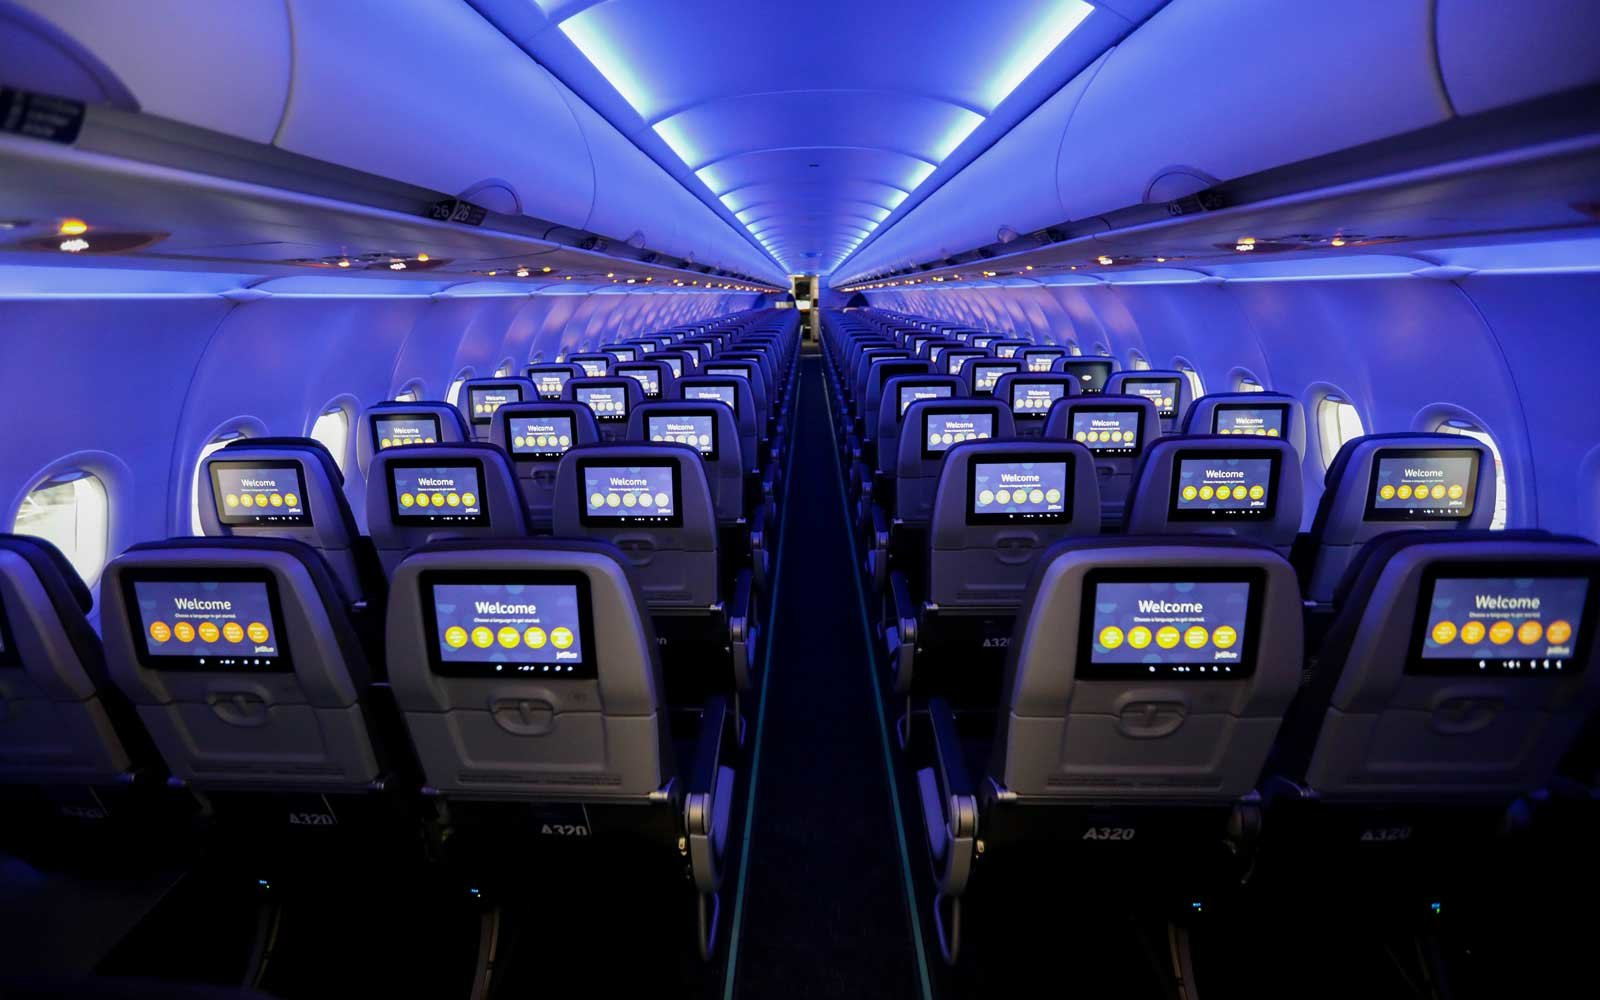 Why JetBlue Is Keeping Seat-back Screens While Other